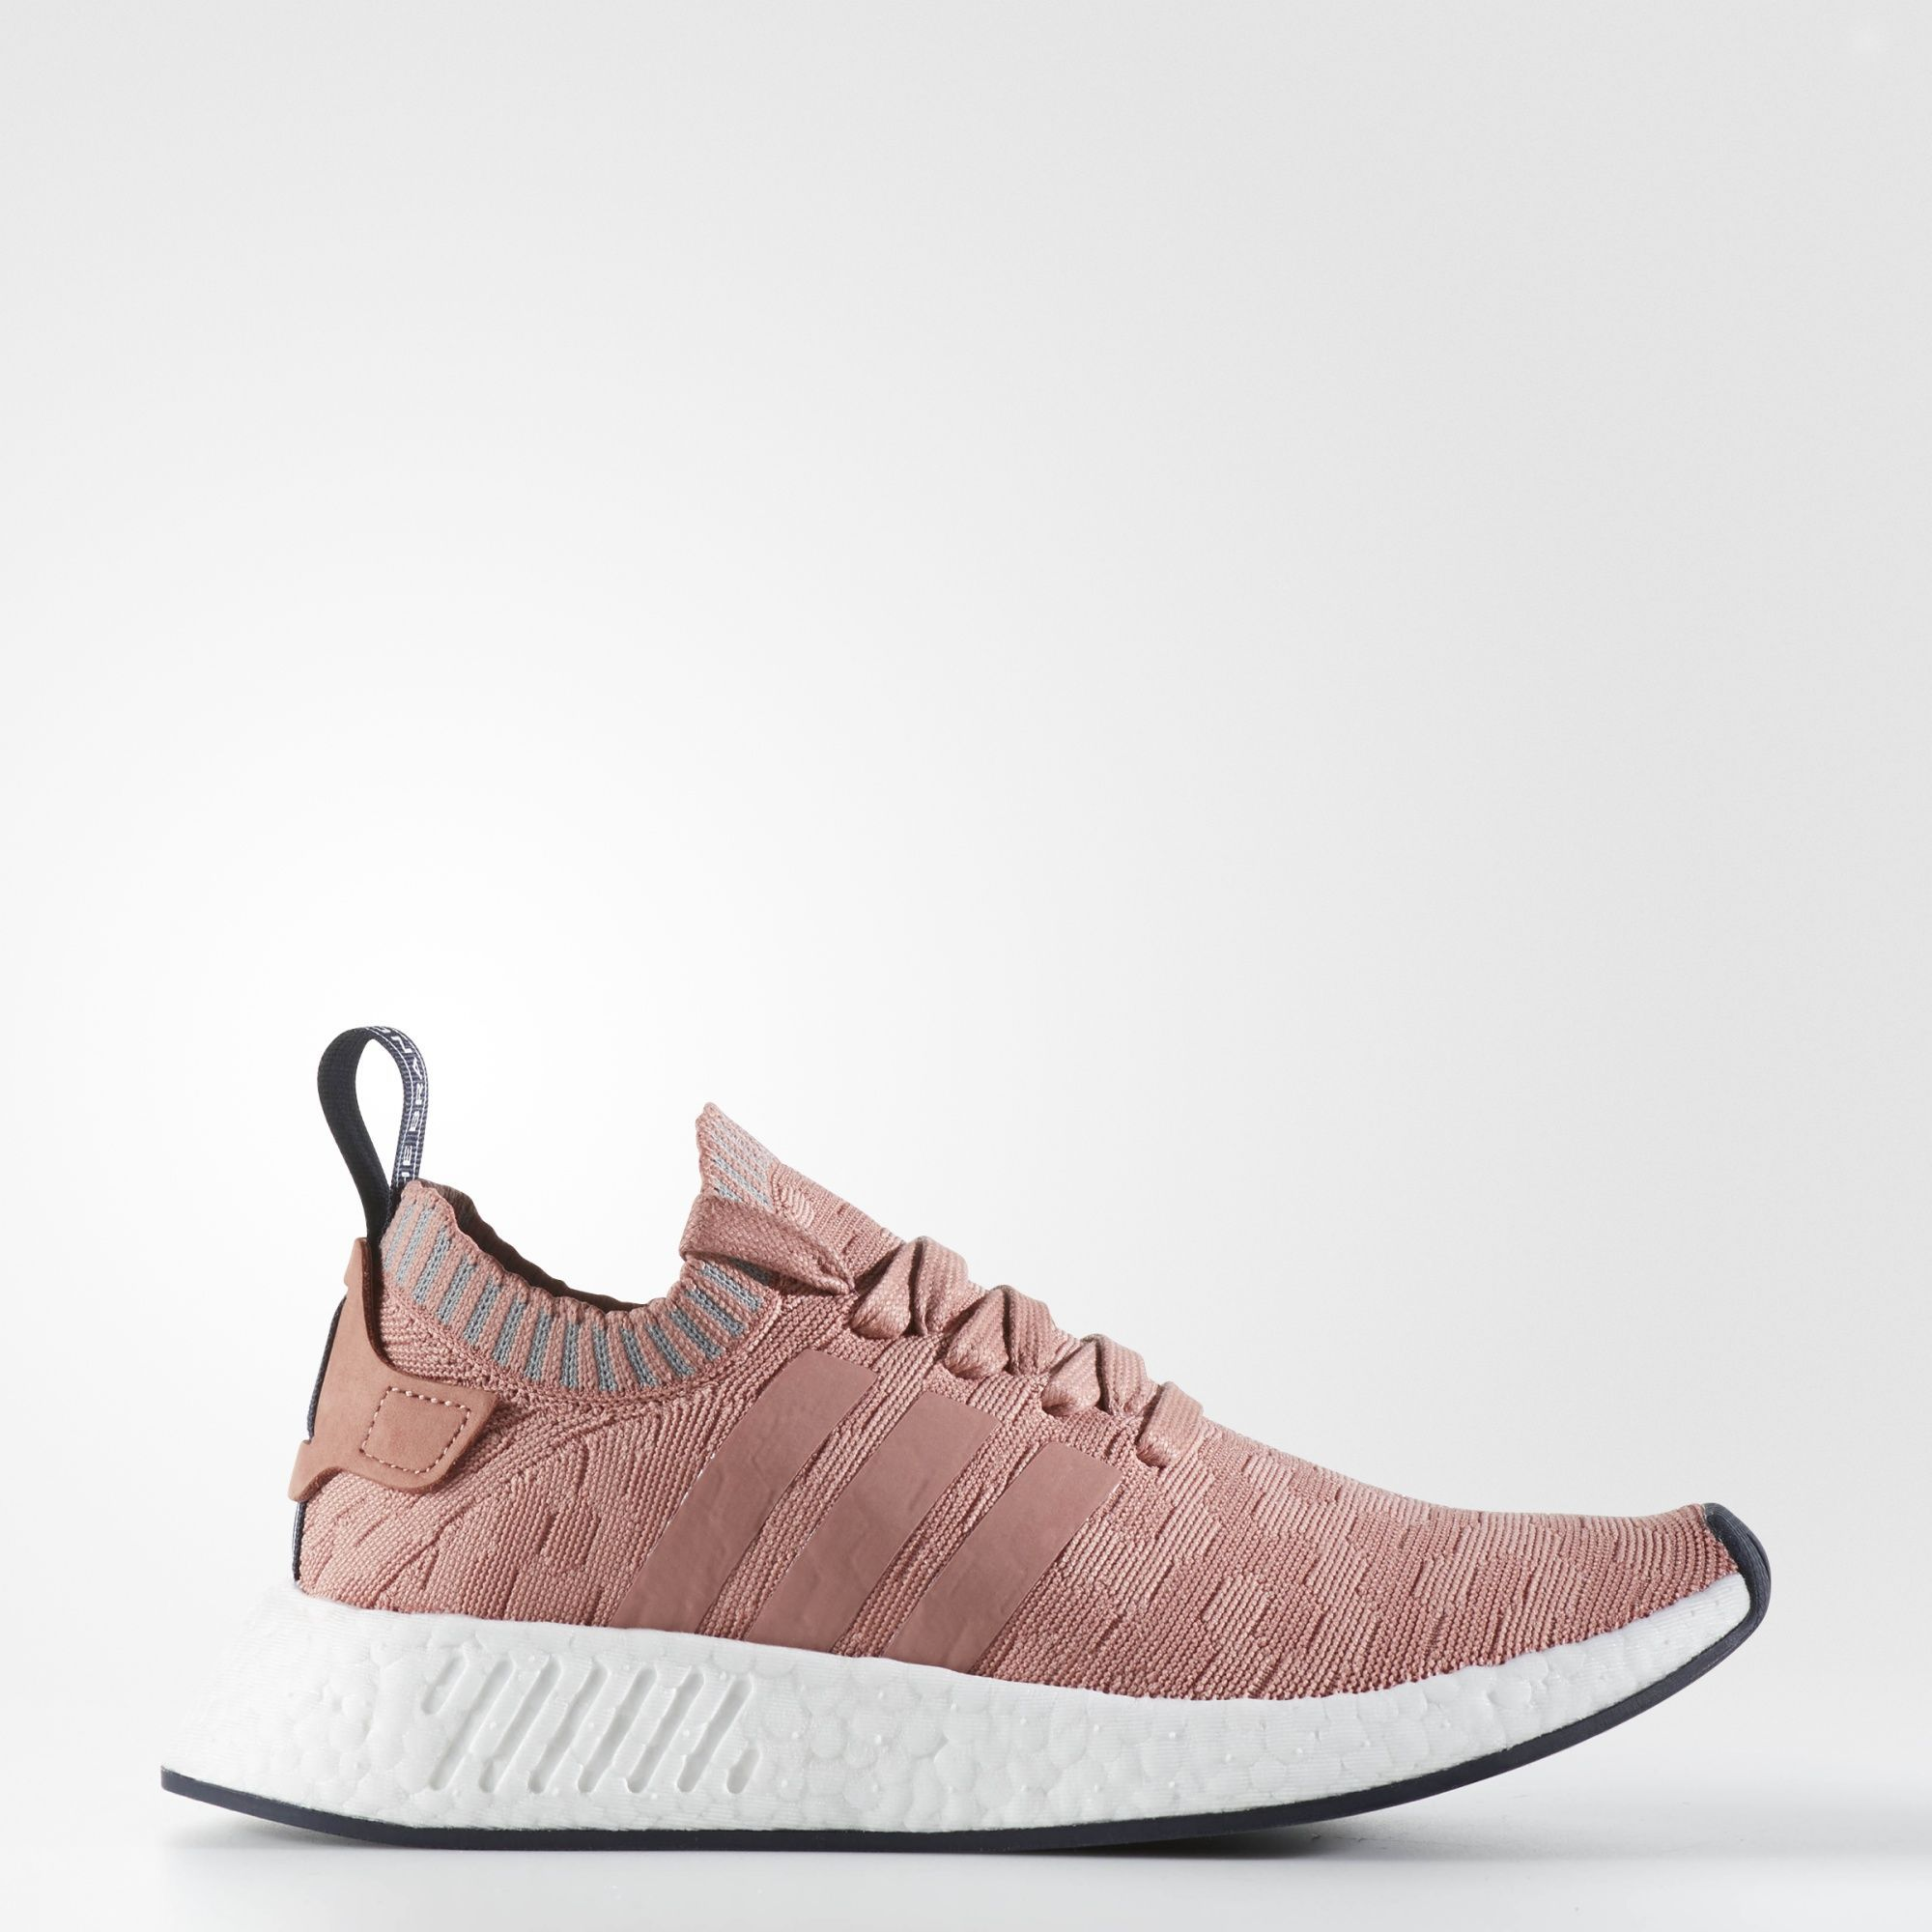 ADIDAS ORIGINALS - Women's NMD_R2 Primeknit Shoes in